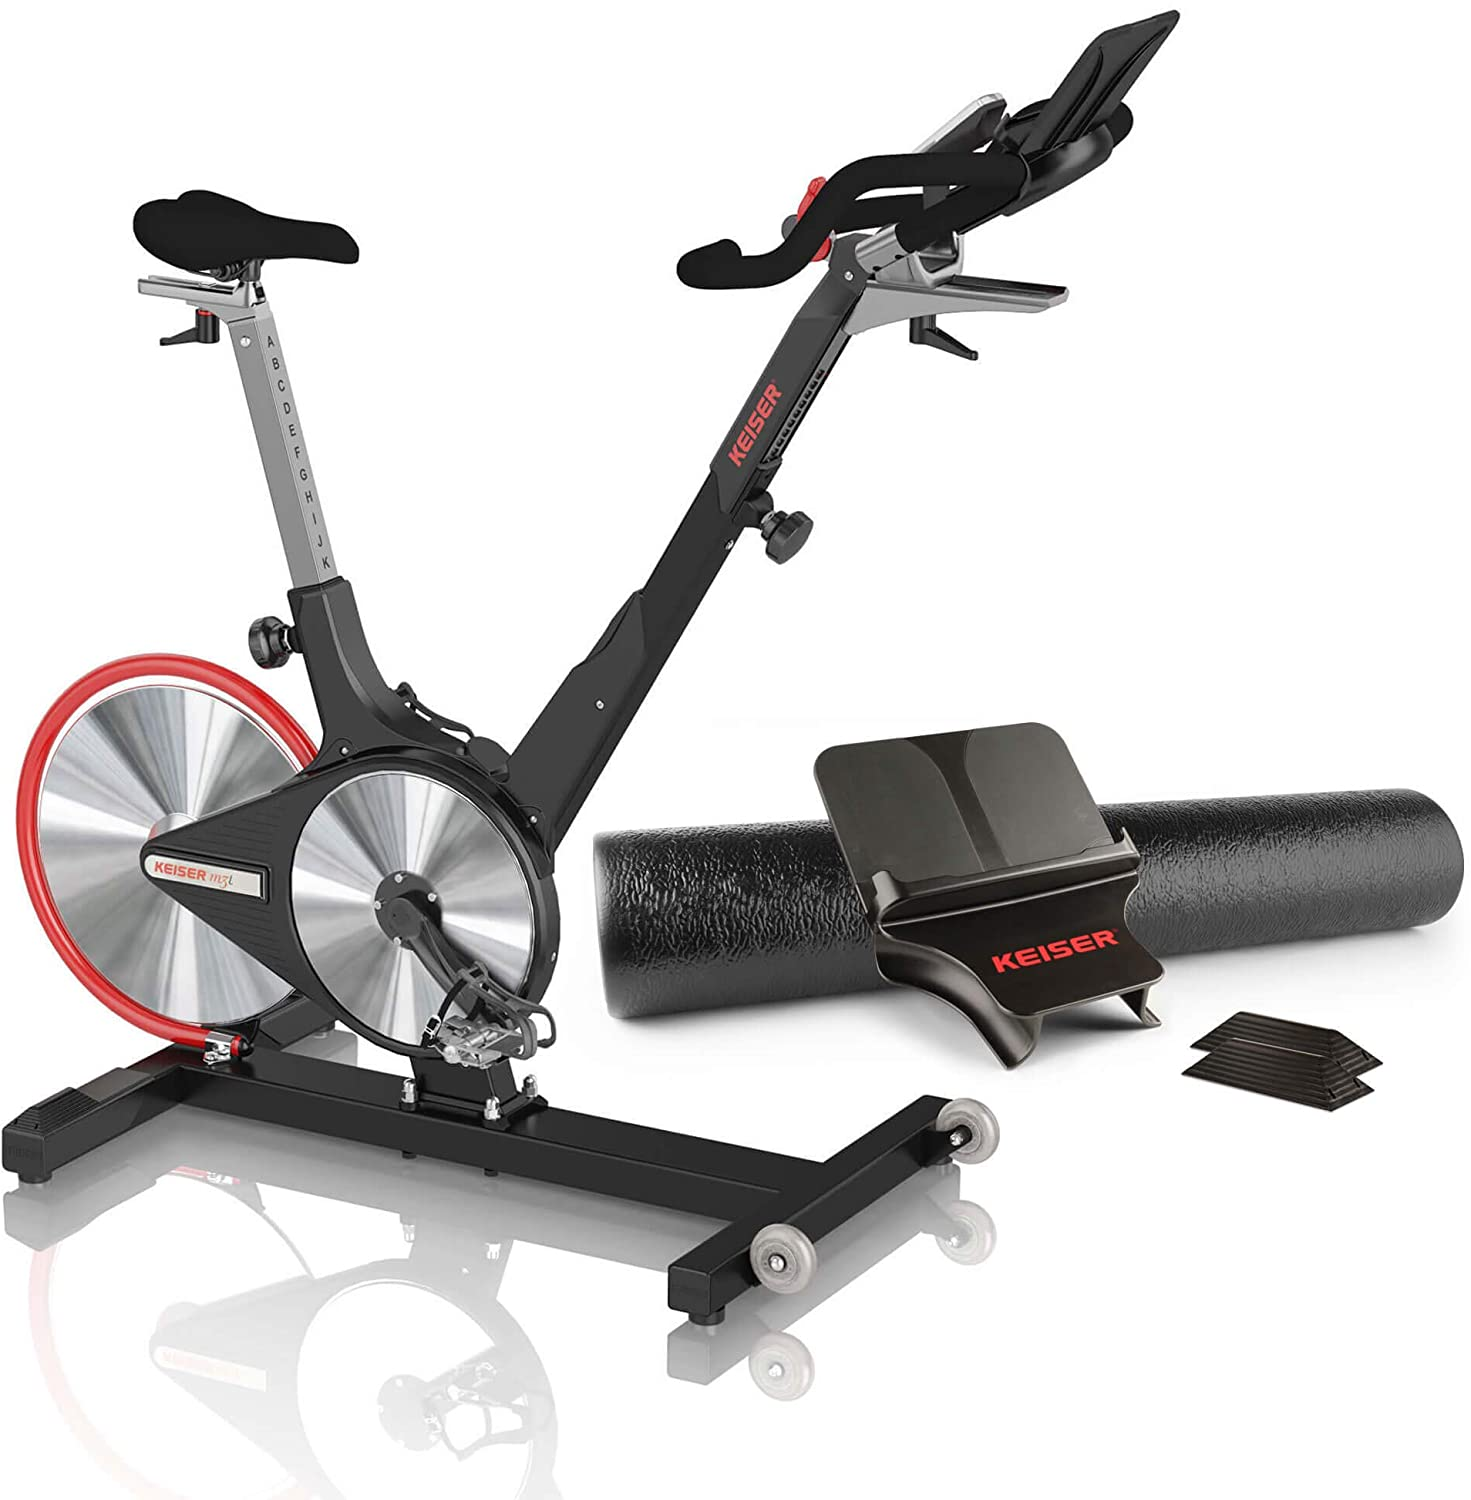 Best Exercise Bikes On Amazon 2021 Spin Bike At Home Cycling Workout Rolling Stone